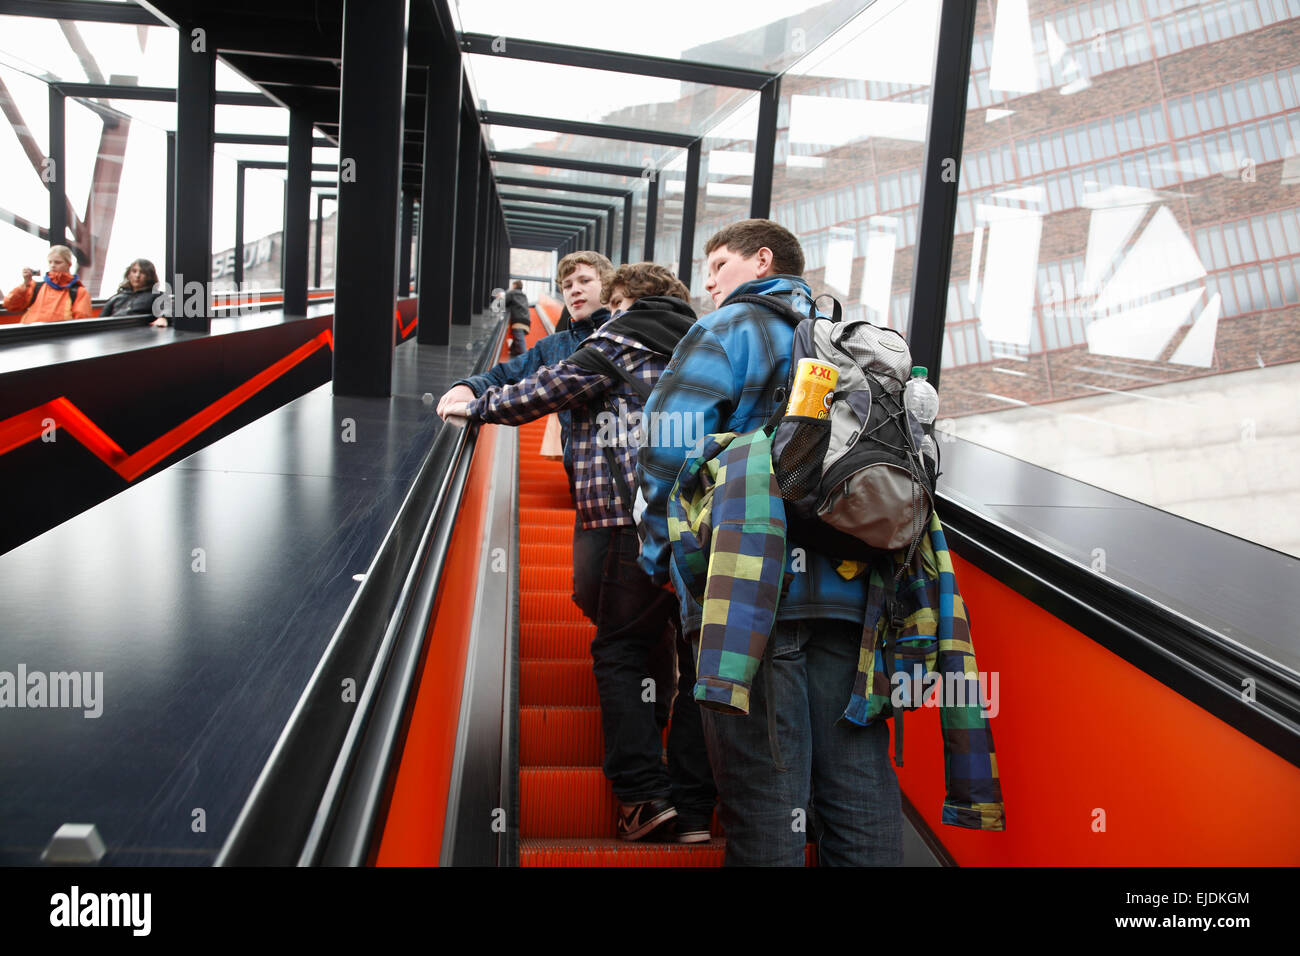 Zeche Zollverein, Entrance,  Essen, Nordrhine Westphalia, Germany, Europe - Stock Image